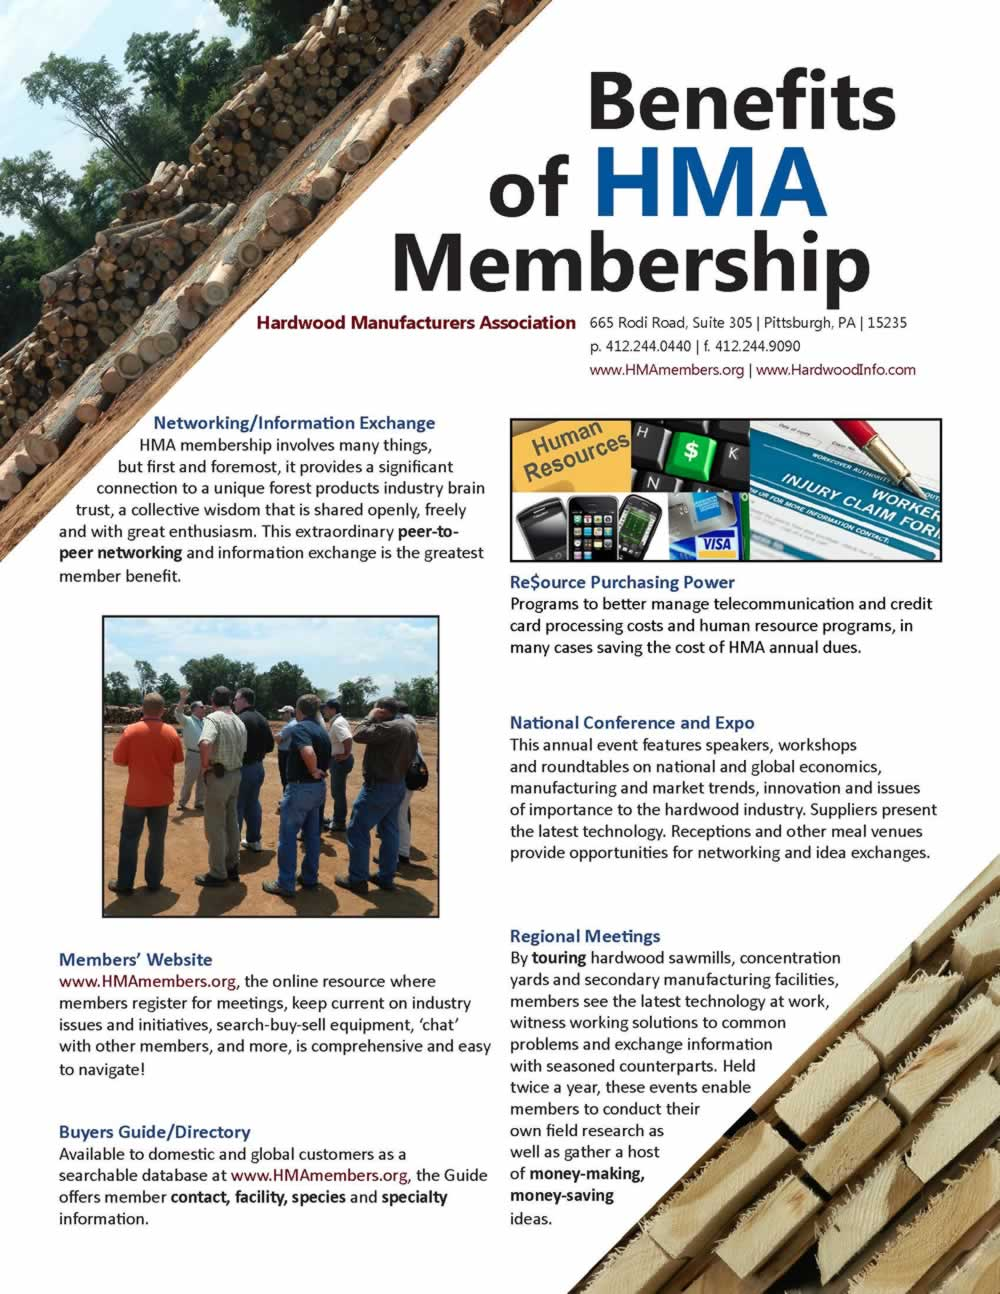 Benefits of HMA Membership